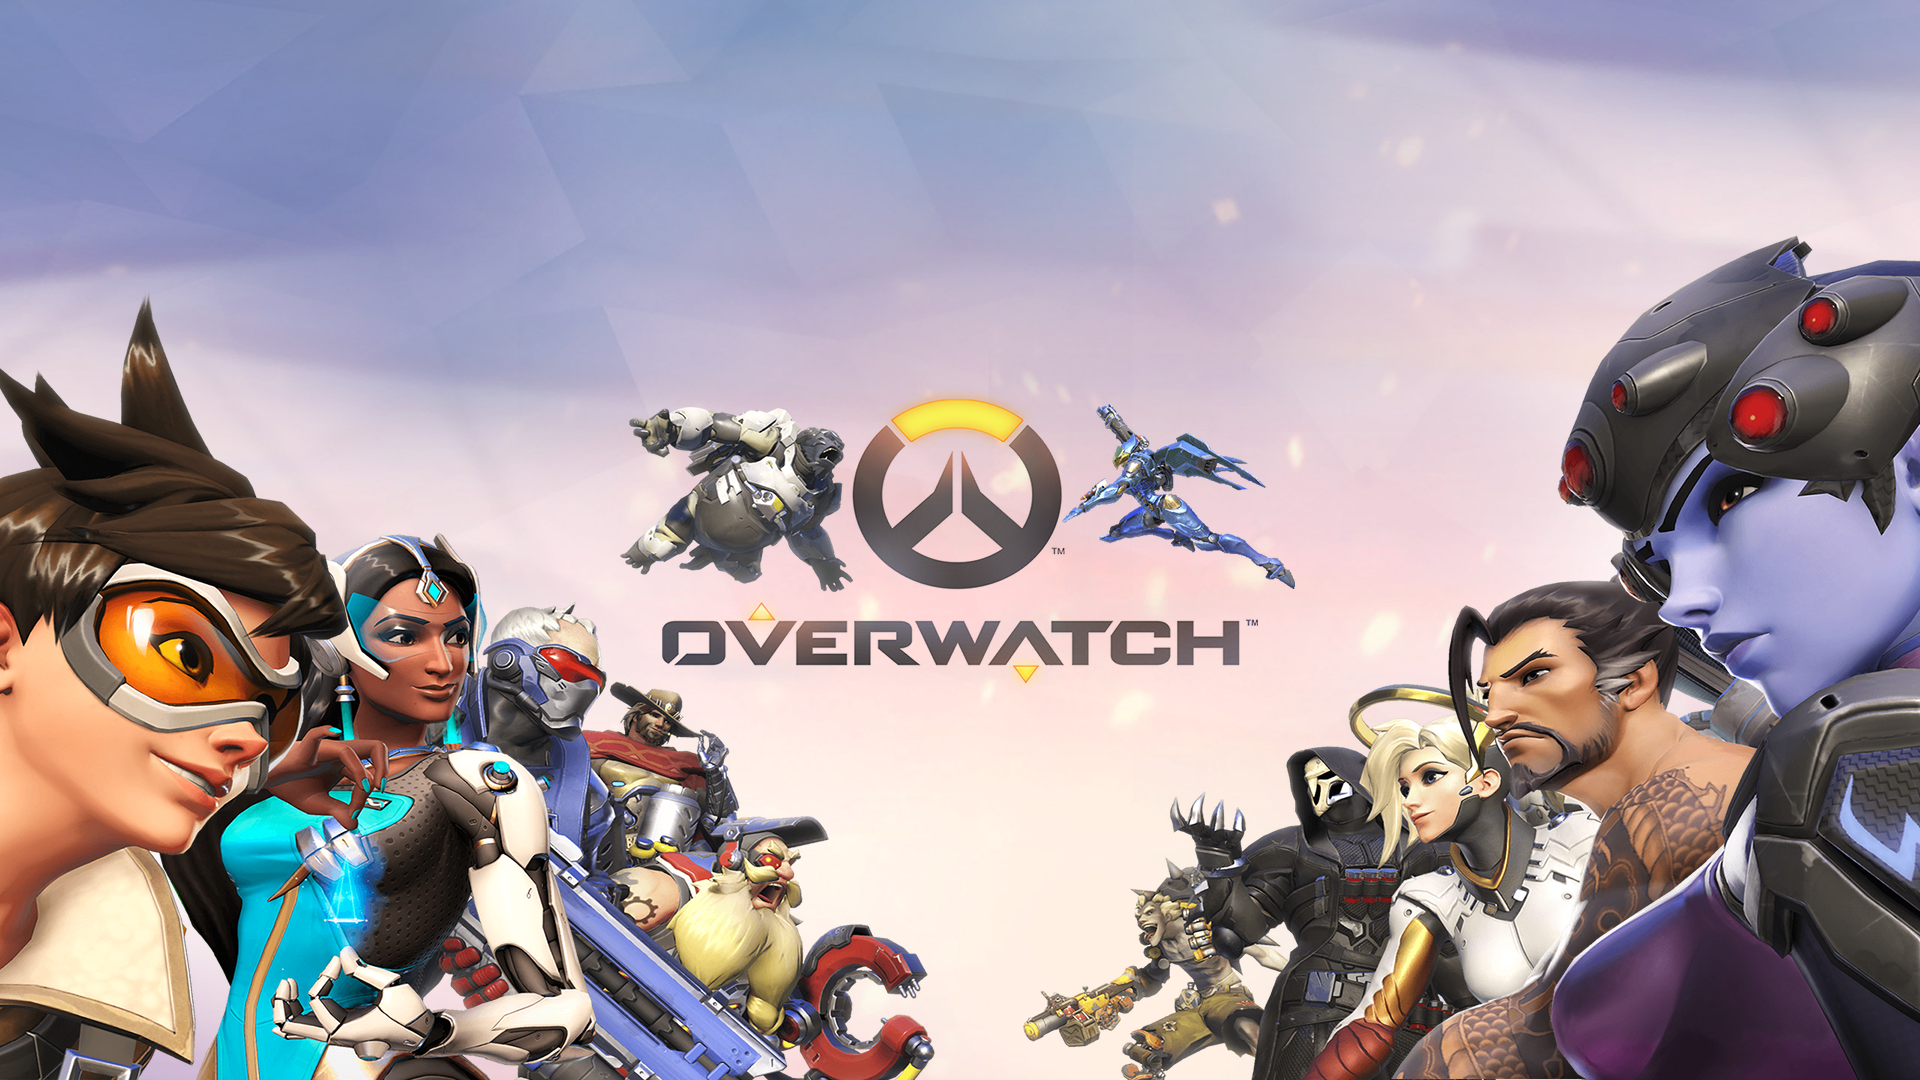 Video Game Overwatch  Symmetra Widowmaker Junkrat Soldier: 76 Pharah Torbjörn McCree Winston Mercy Hanzo Reaper Tracer Wallpaper